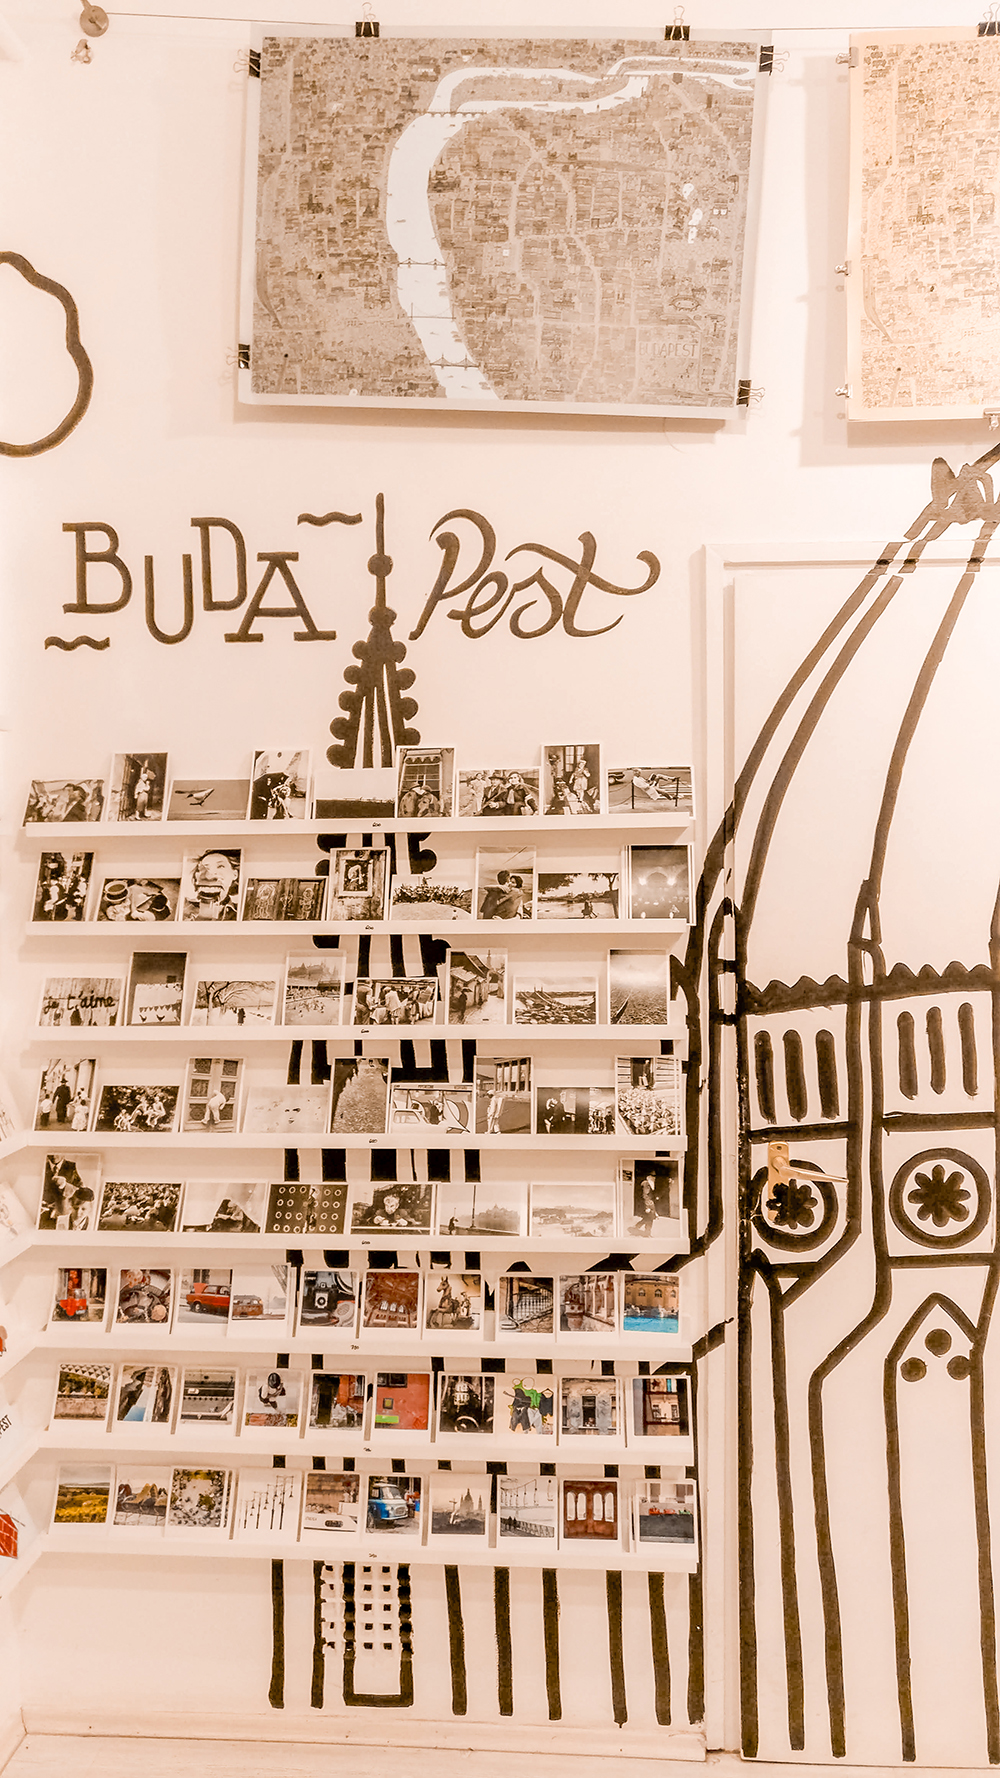 Postcards in Rododendron Art & Design Shop - Budapest design shop guide to best Hungarian souvenirs | Aliz's Wonderland